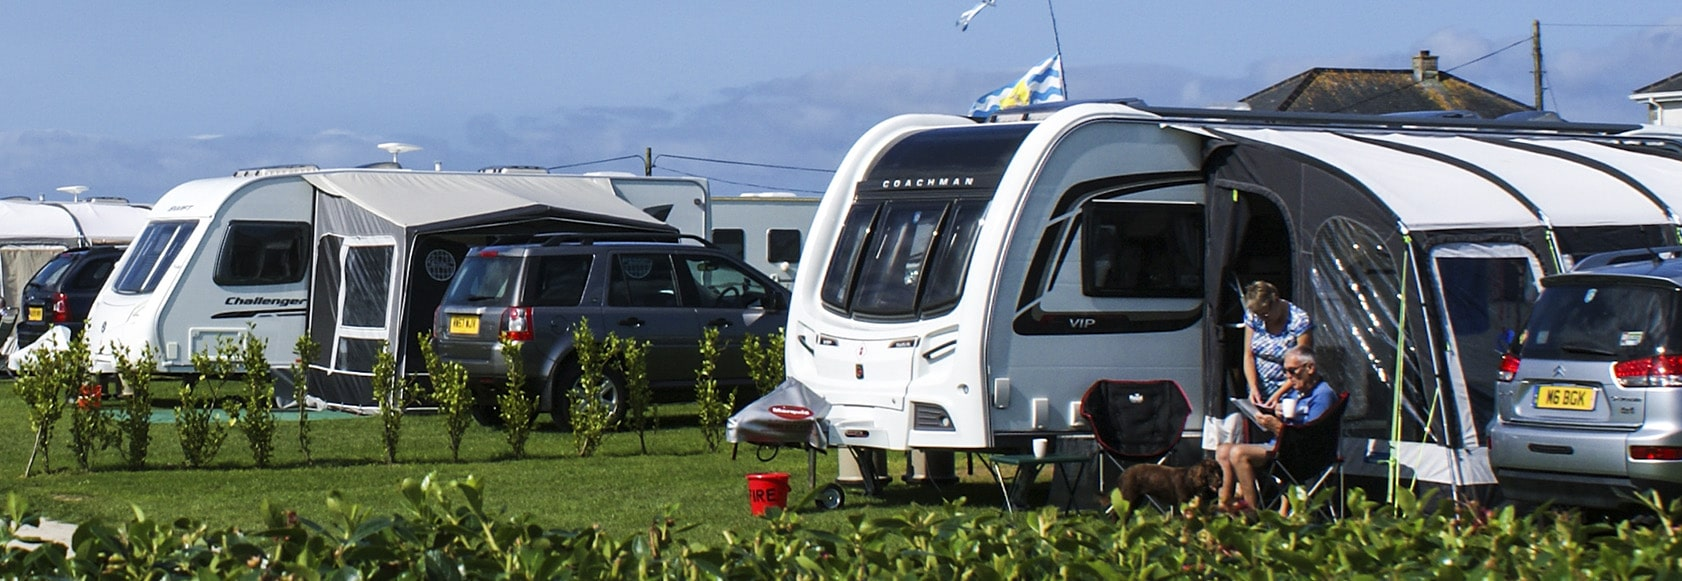 Touring Caravan at Hendra in Newquay Cornwall